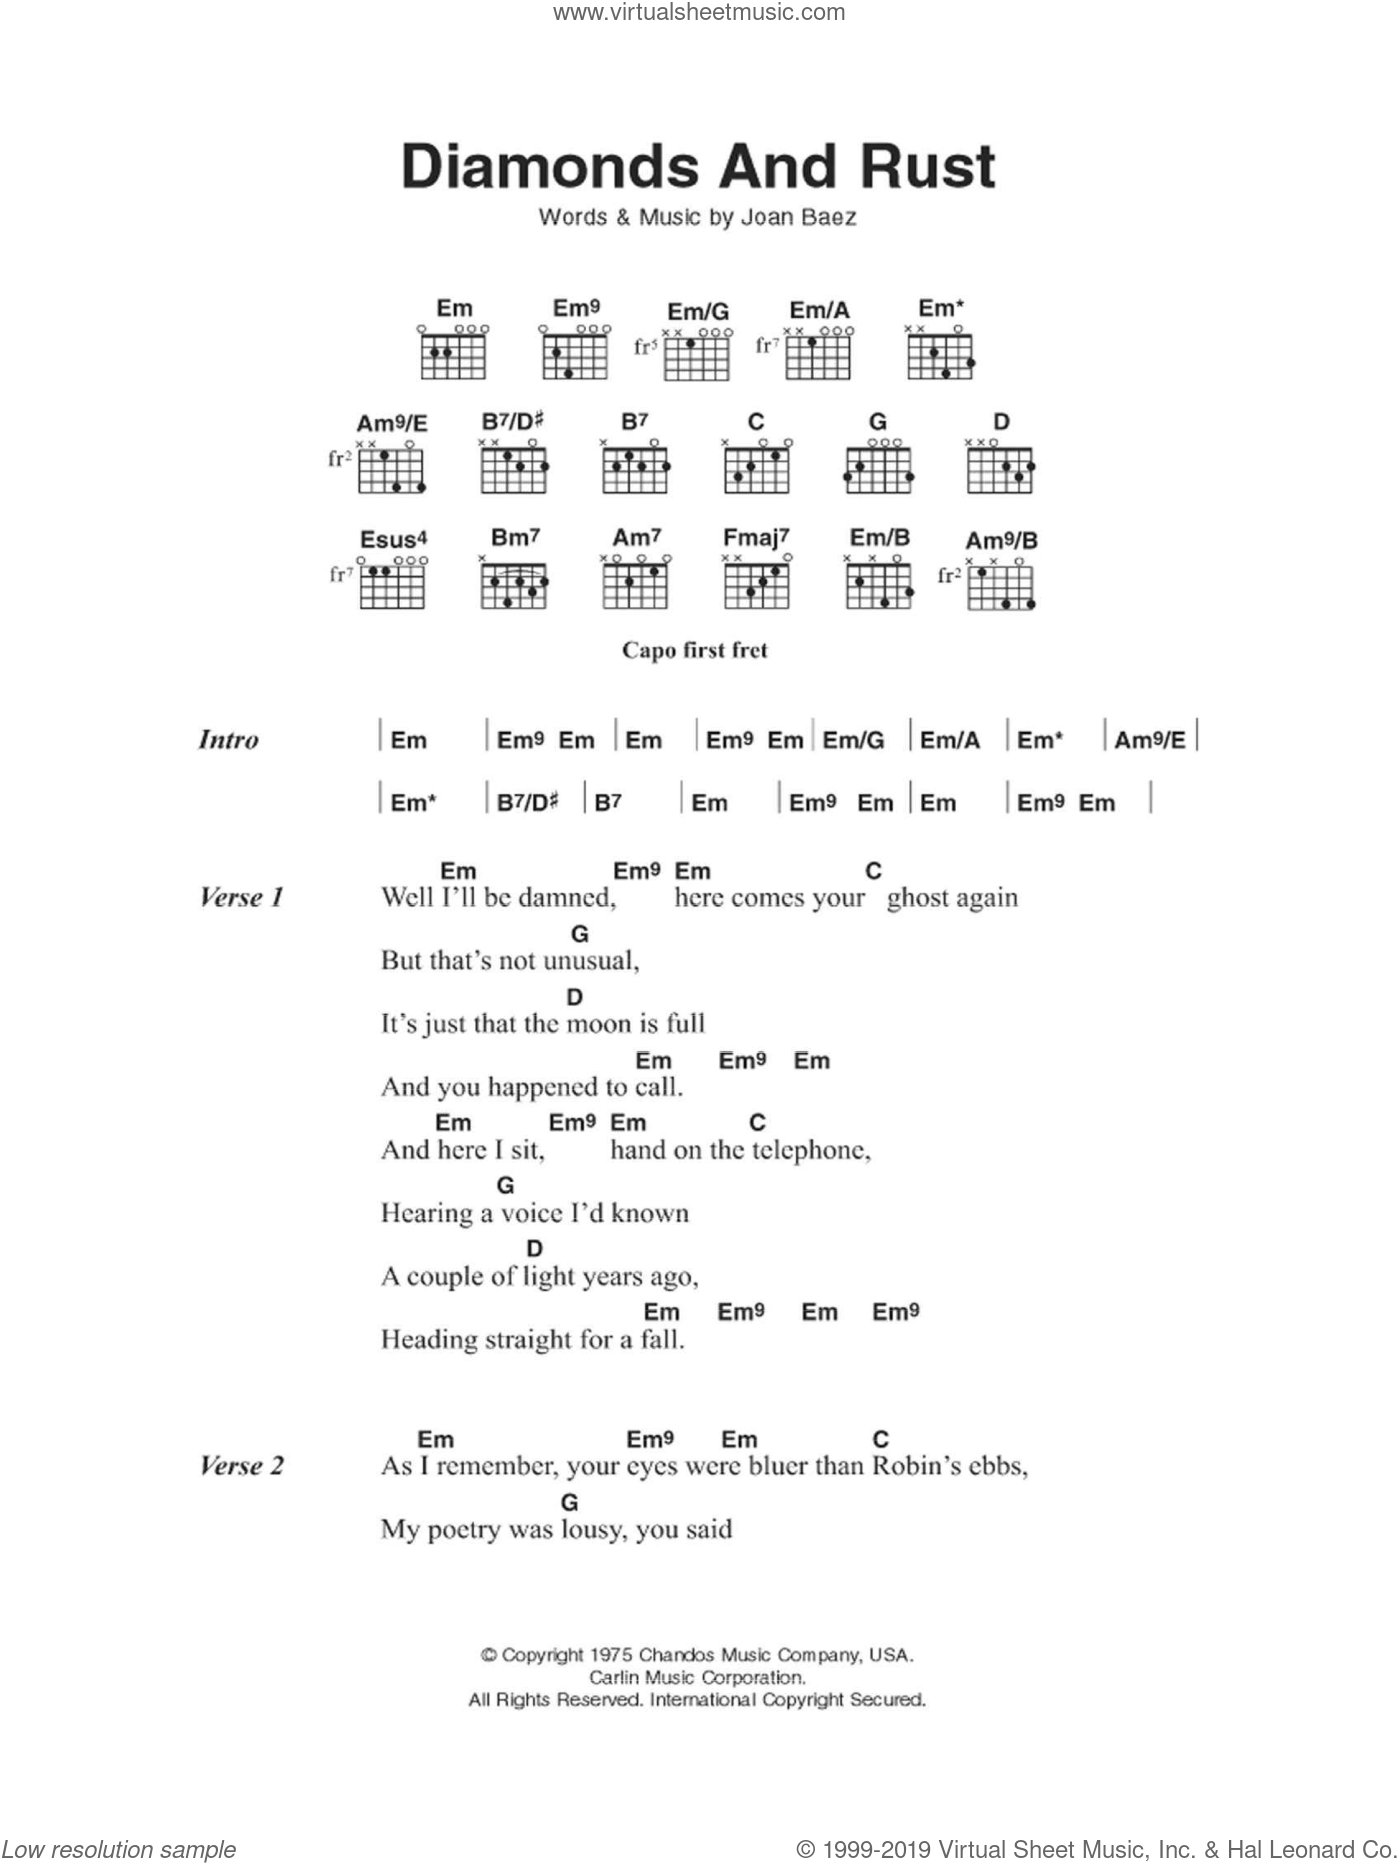 Diamonds And Rust sheet music for guitar (chords) by Joan Baez